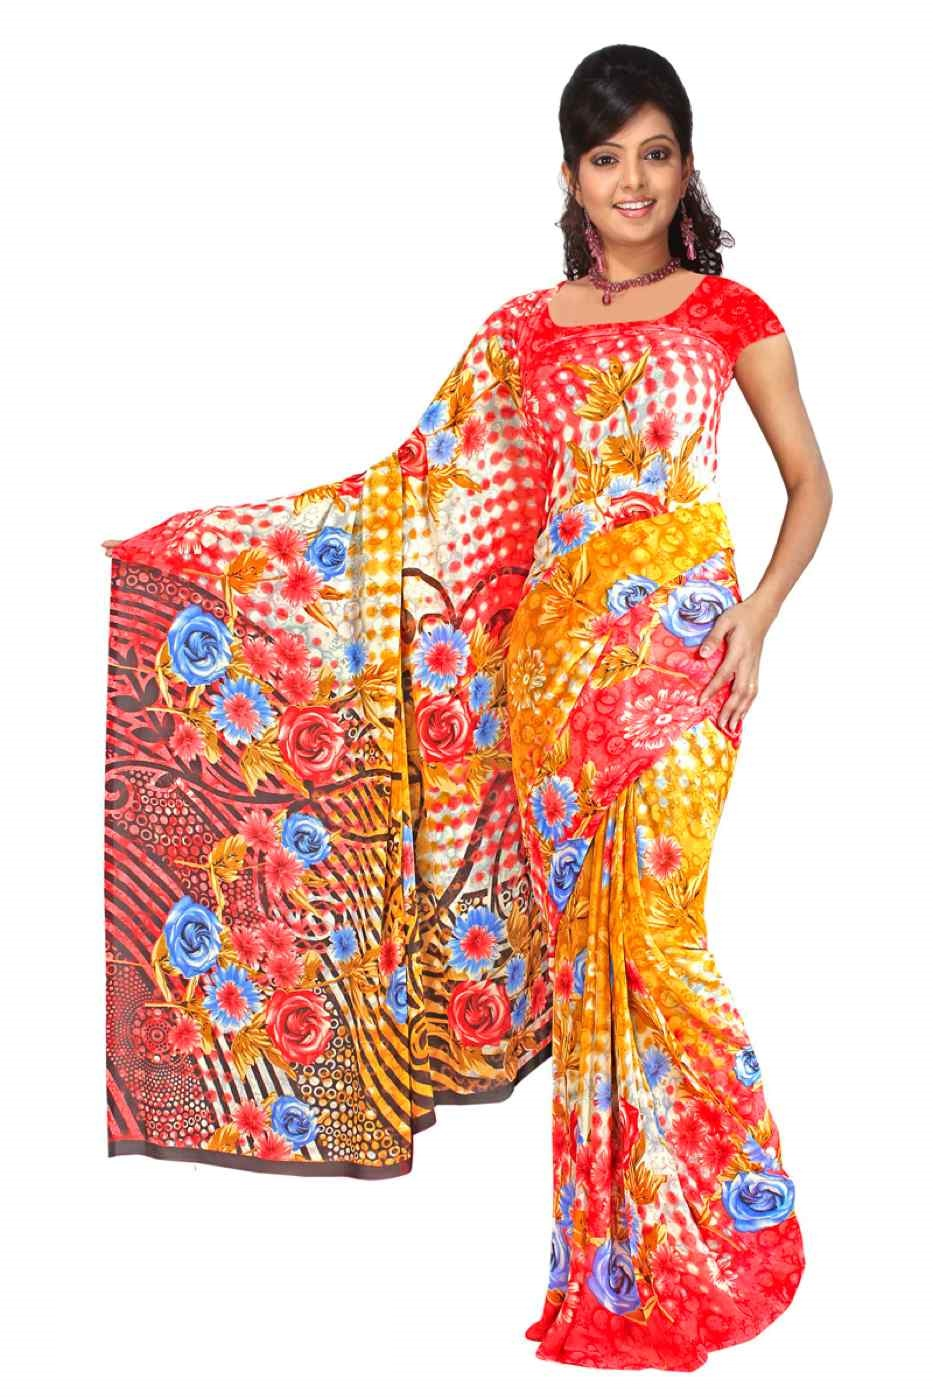 Indian Selections Devki Georgette Printed Casual Saree Sari Bellydance fabric at Sears.com